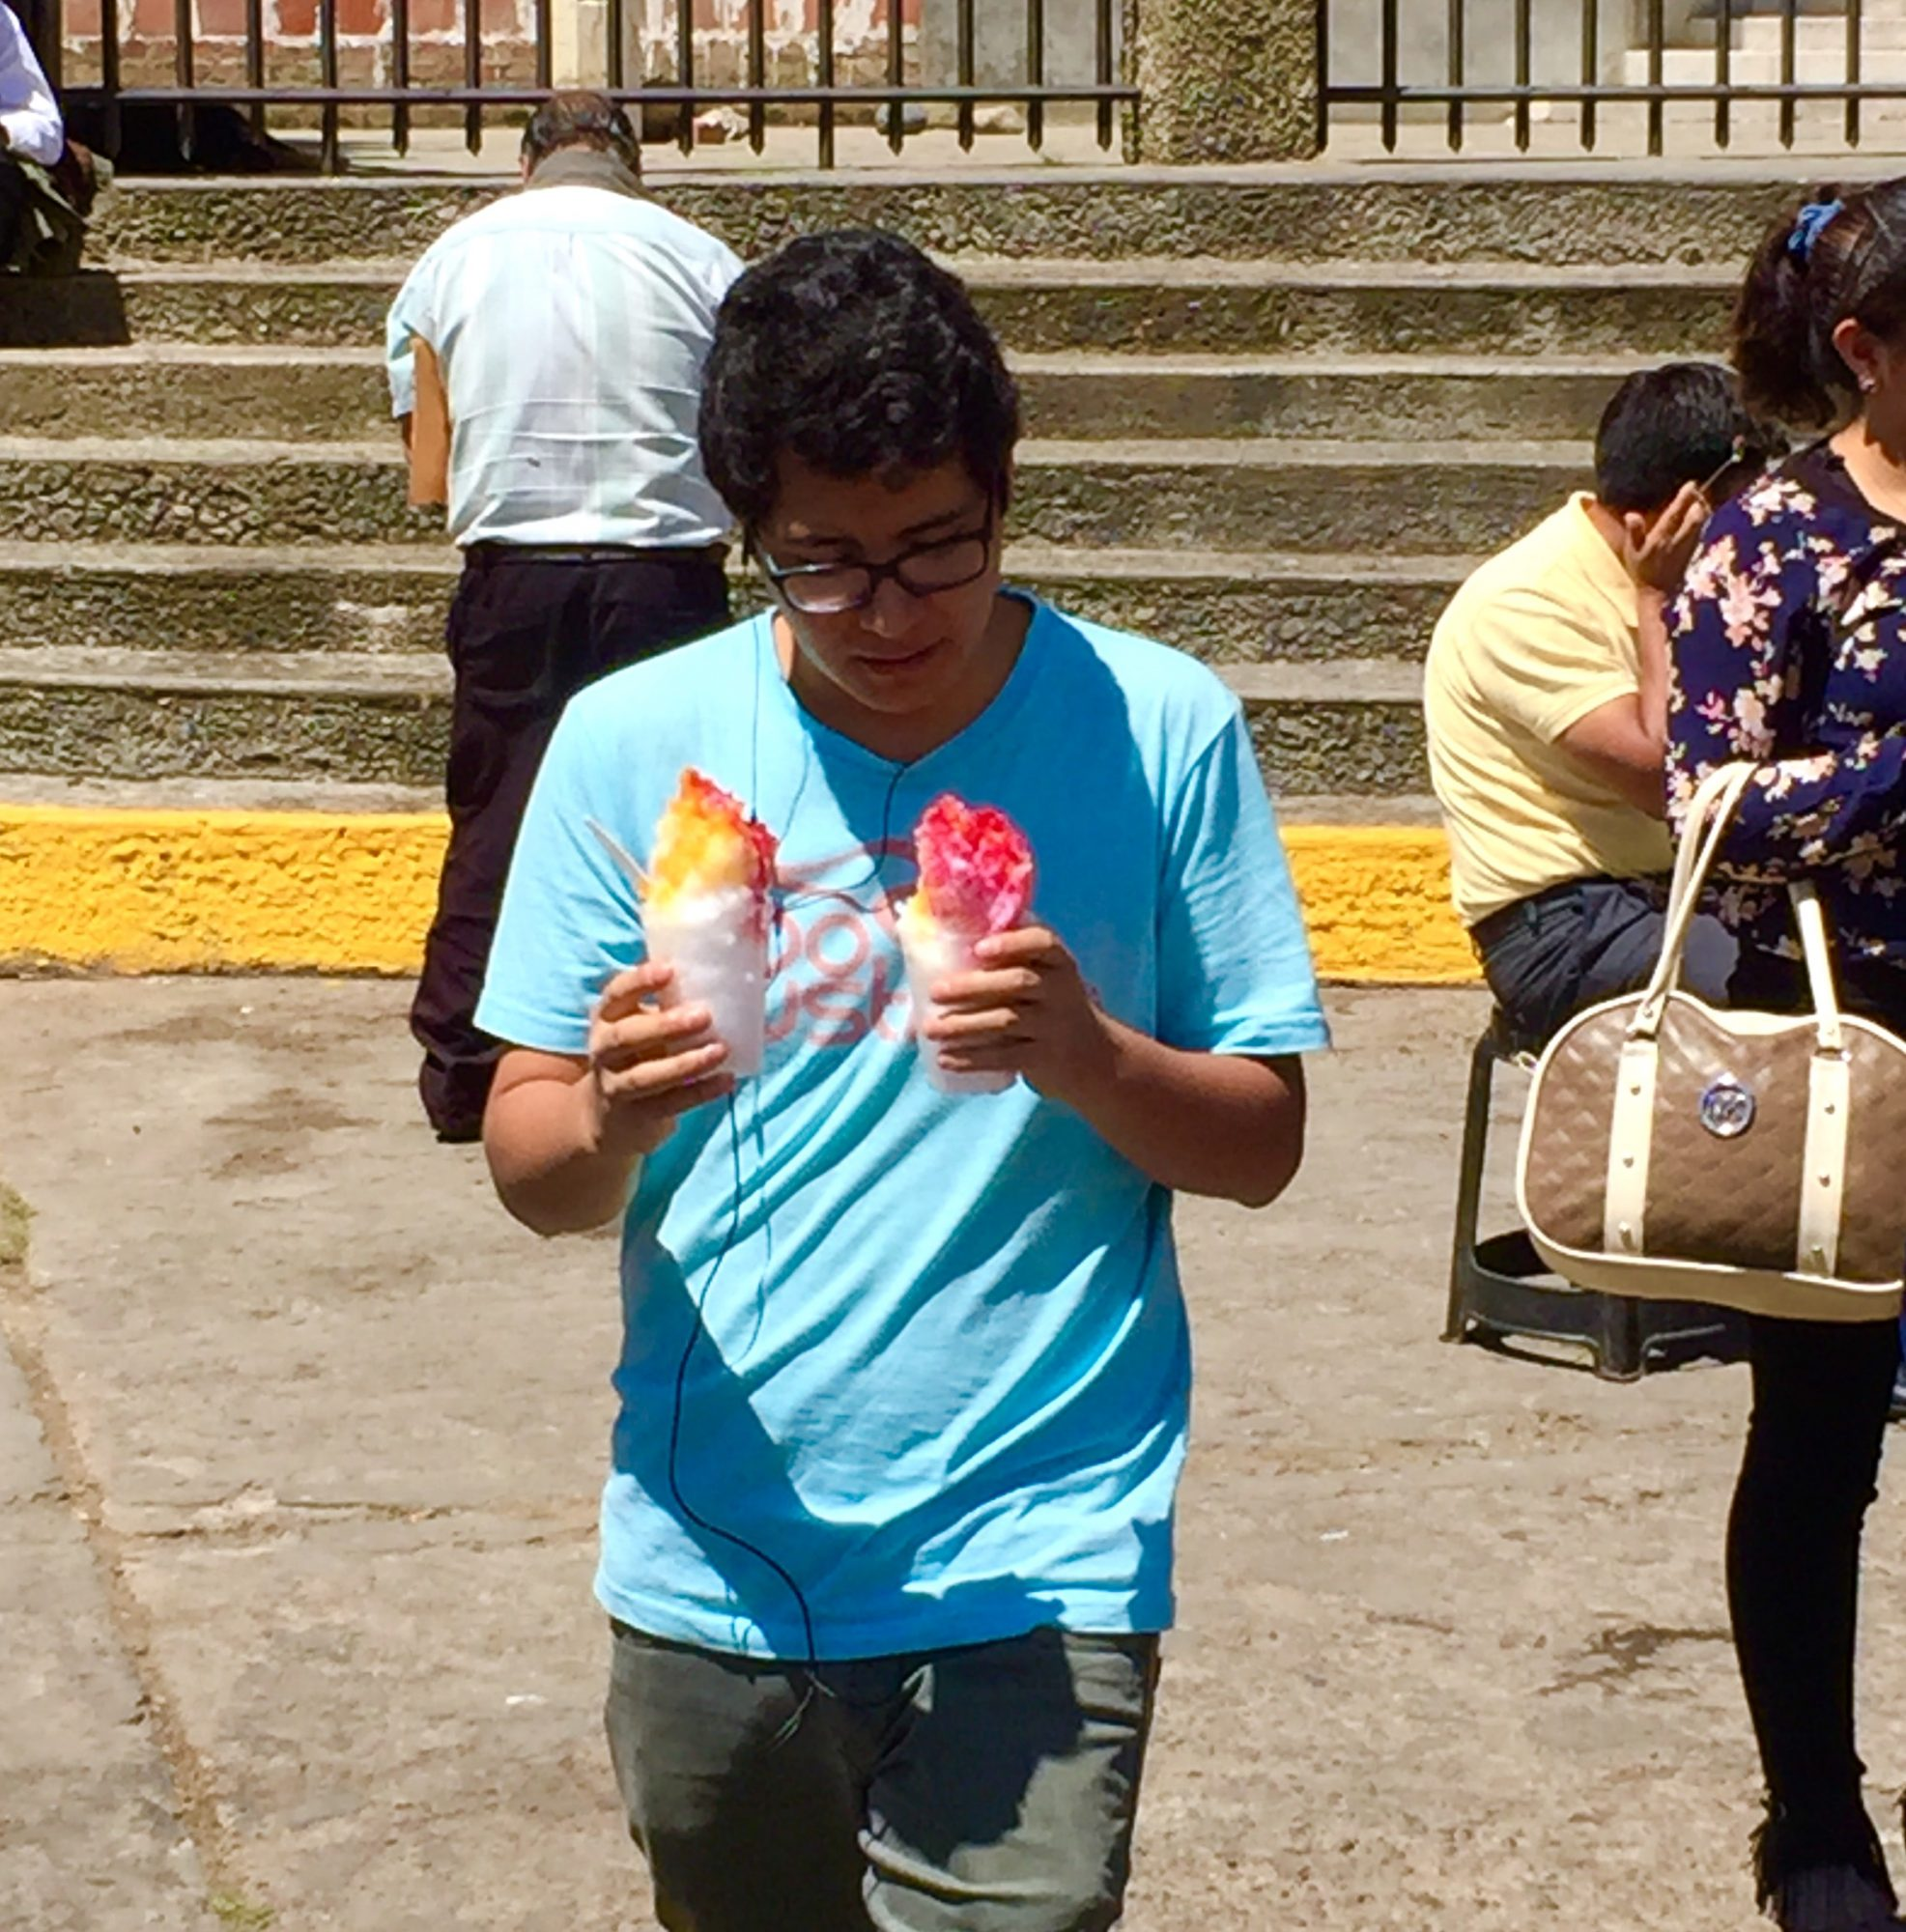 Man with two shaved ice cones